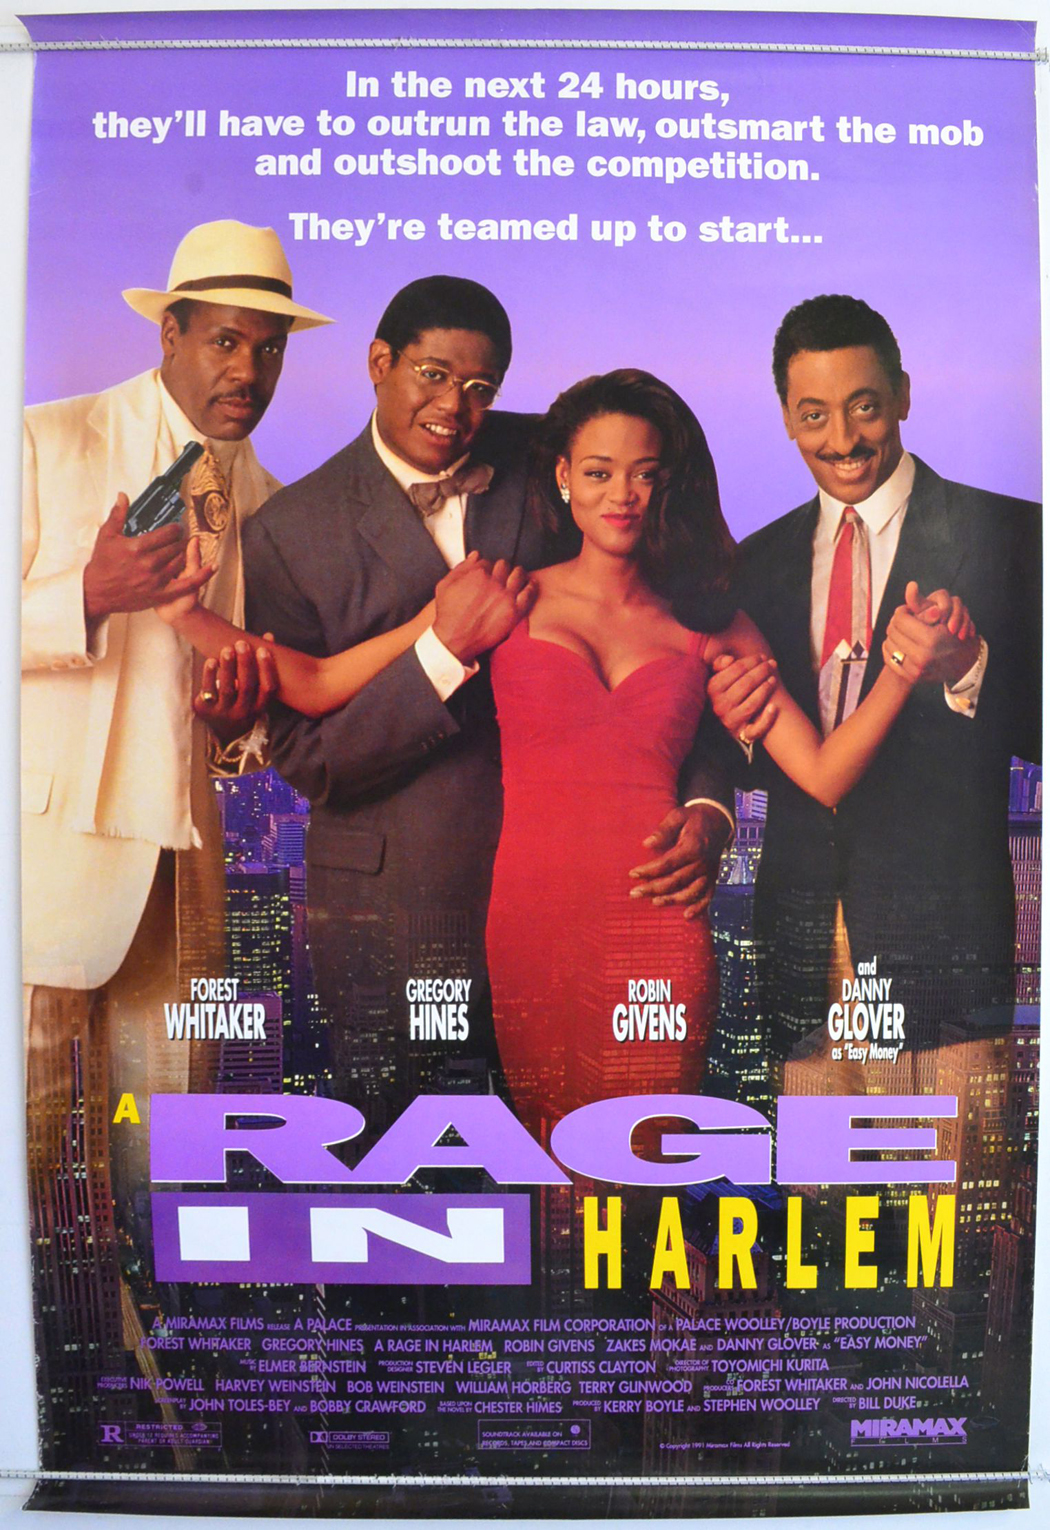 A Rage In Harlem  Original Cinema Movie Poster From